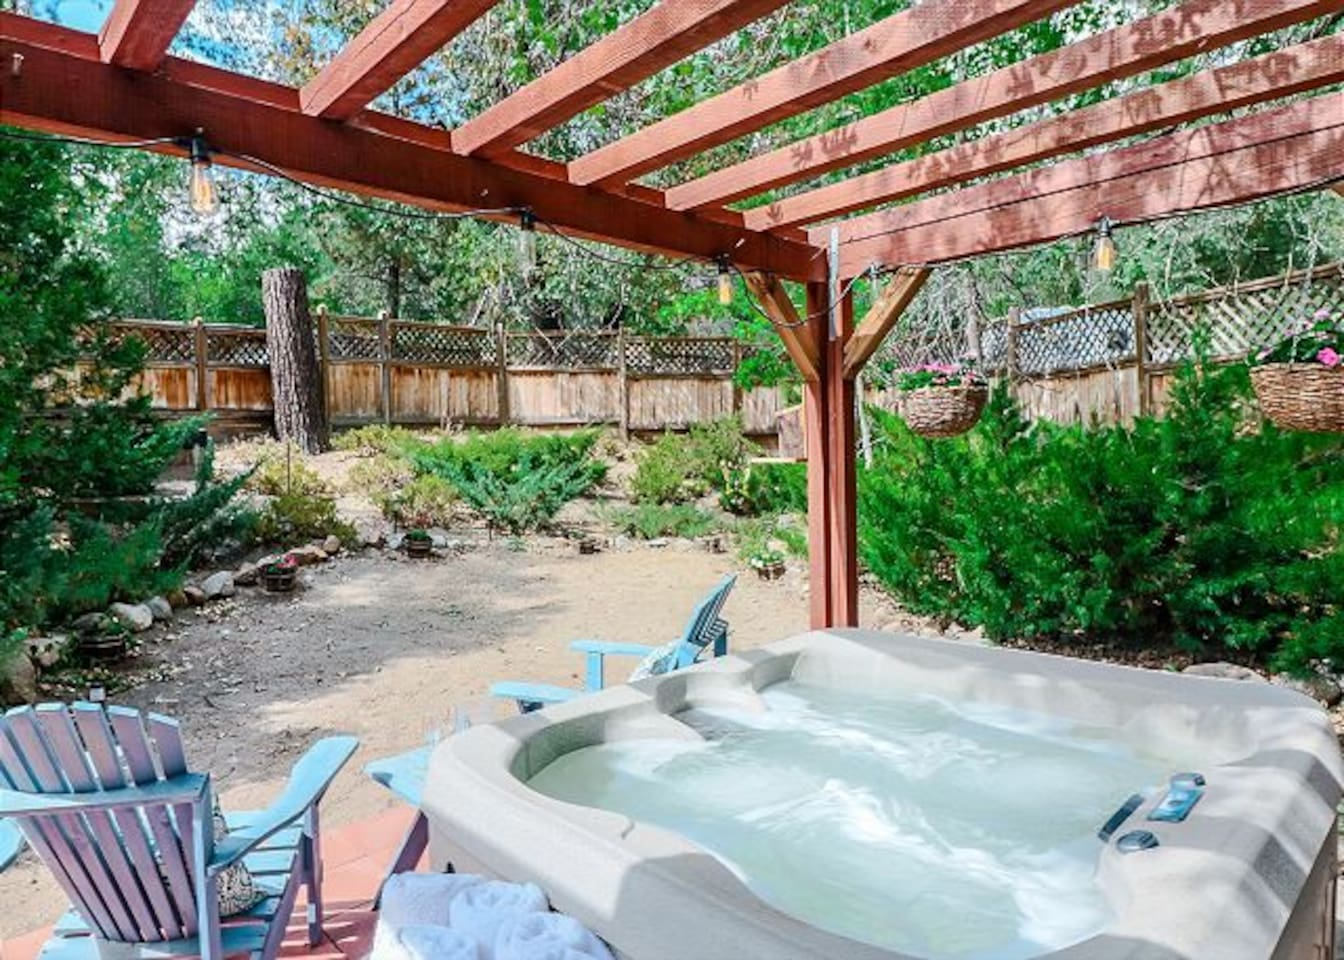 idyllwild dairy cottage w spa fenced in yard pets cabins for